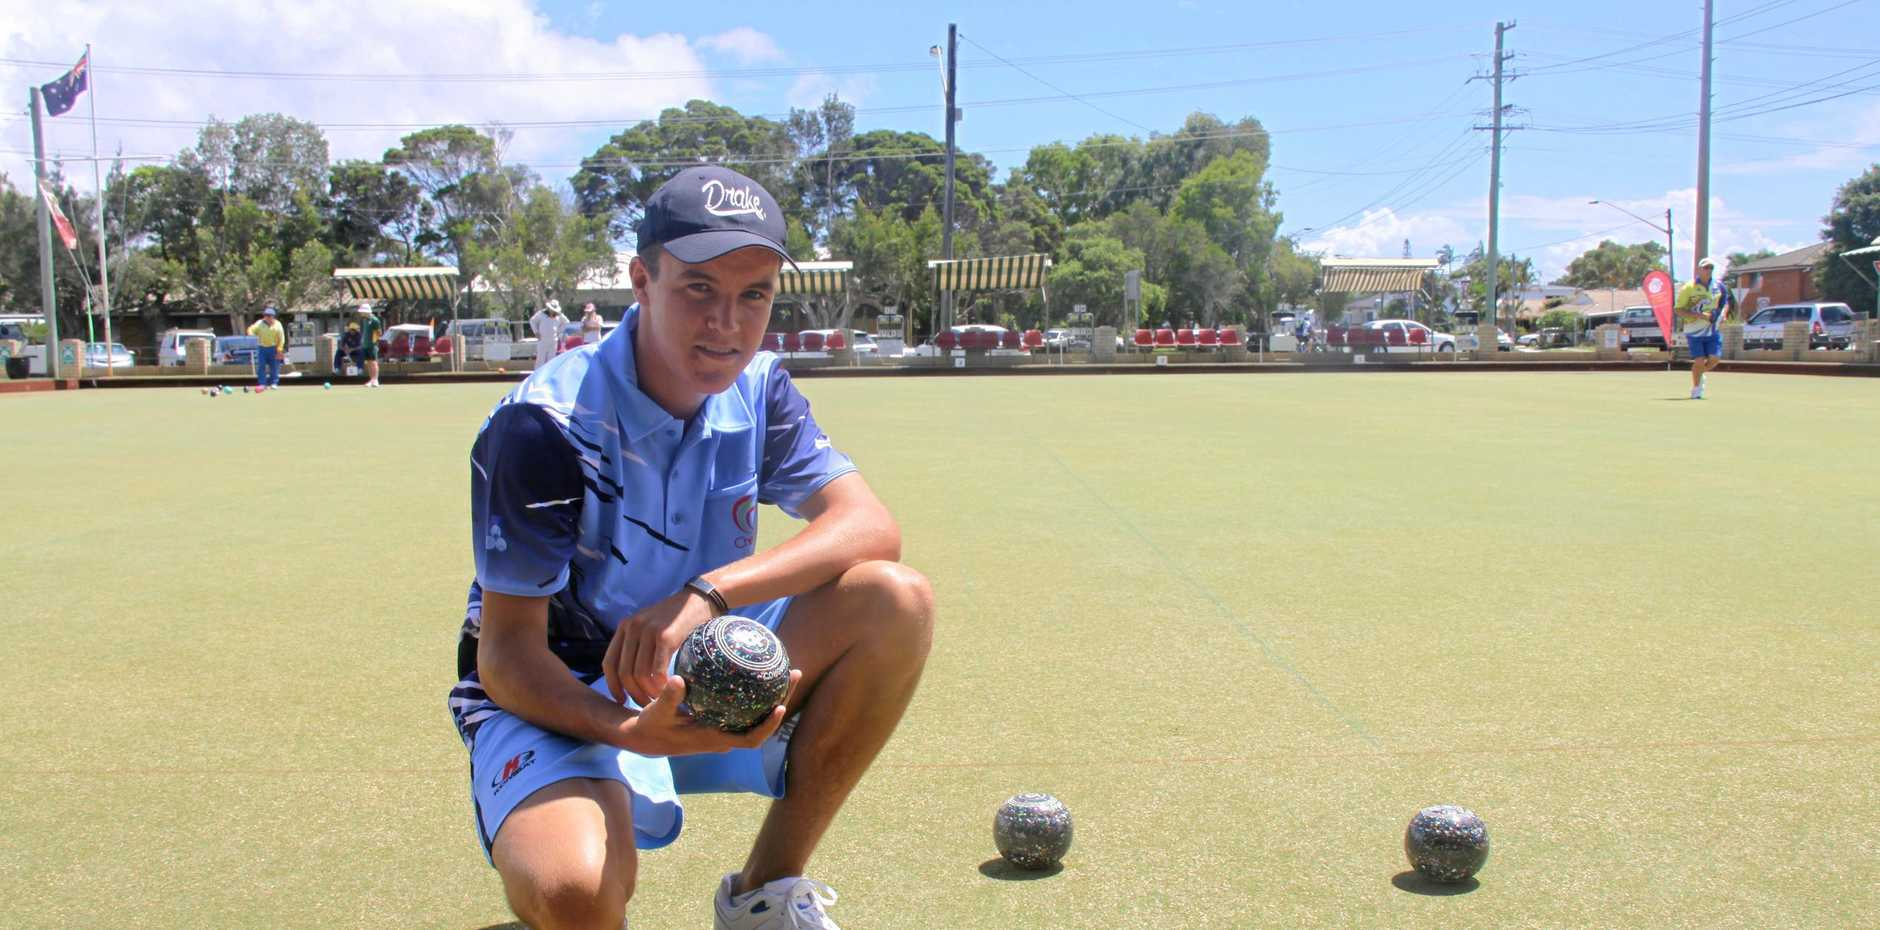 SUMMERLAND SERIES: Young gun Jono Davis, 16, is defending his title in the men's singles and playing in the pairs division of the prestigious Summerland Series at the Ballina Bowls Club.